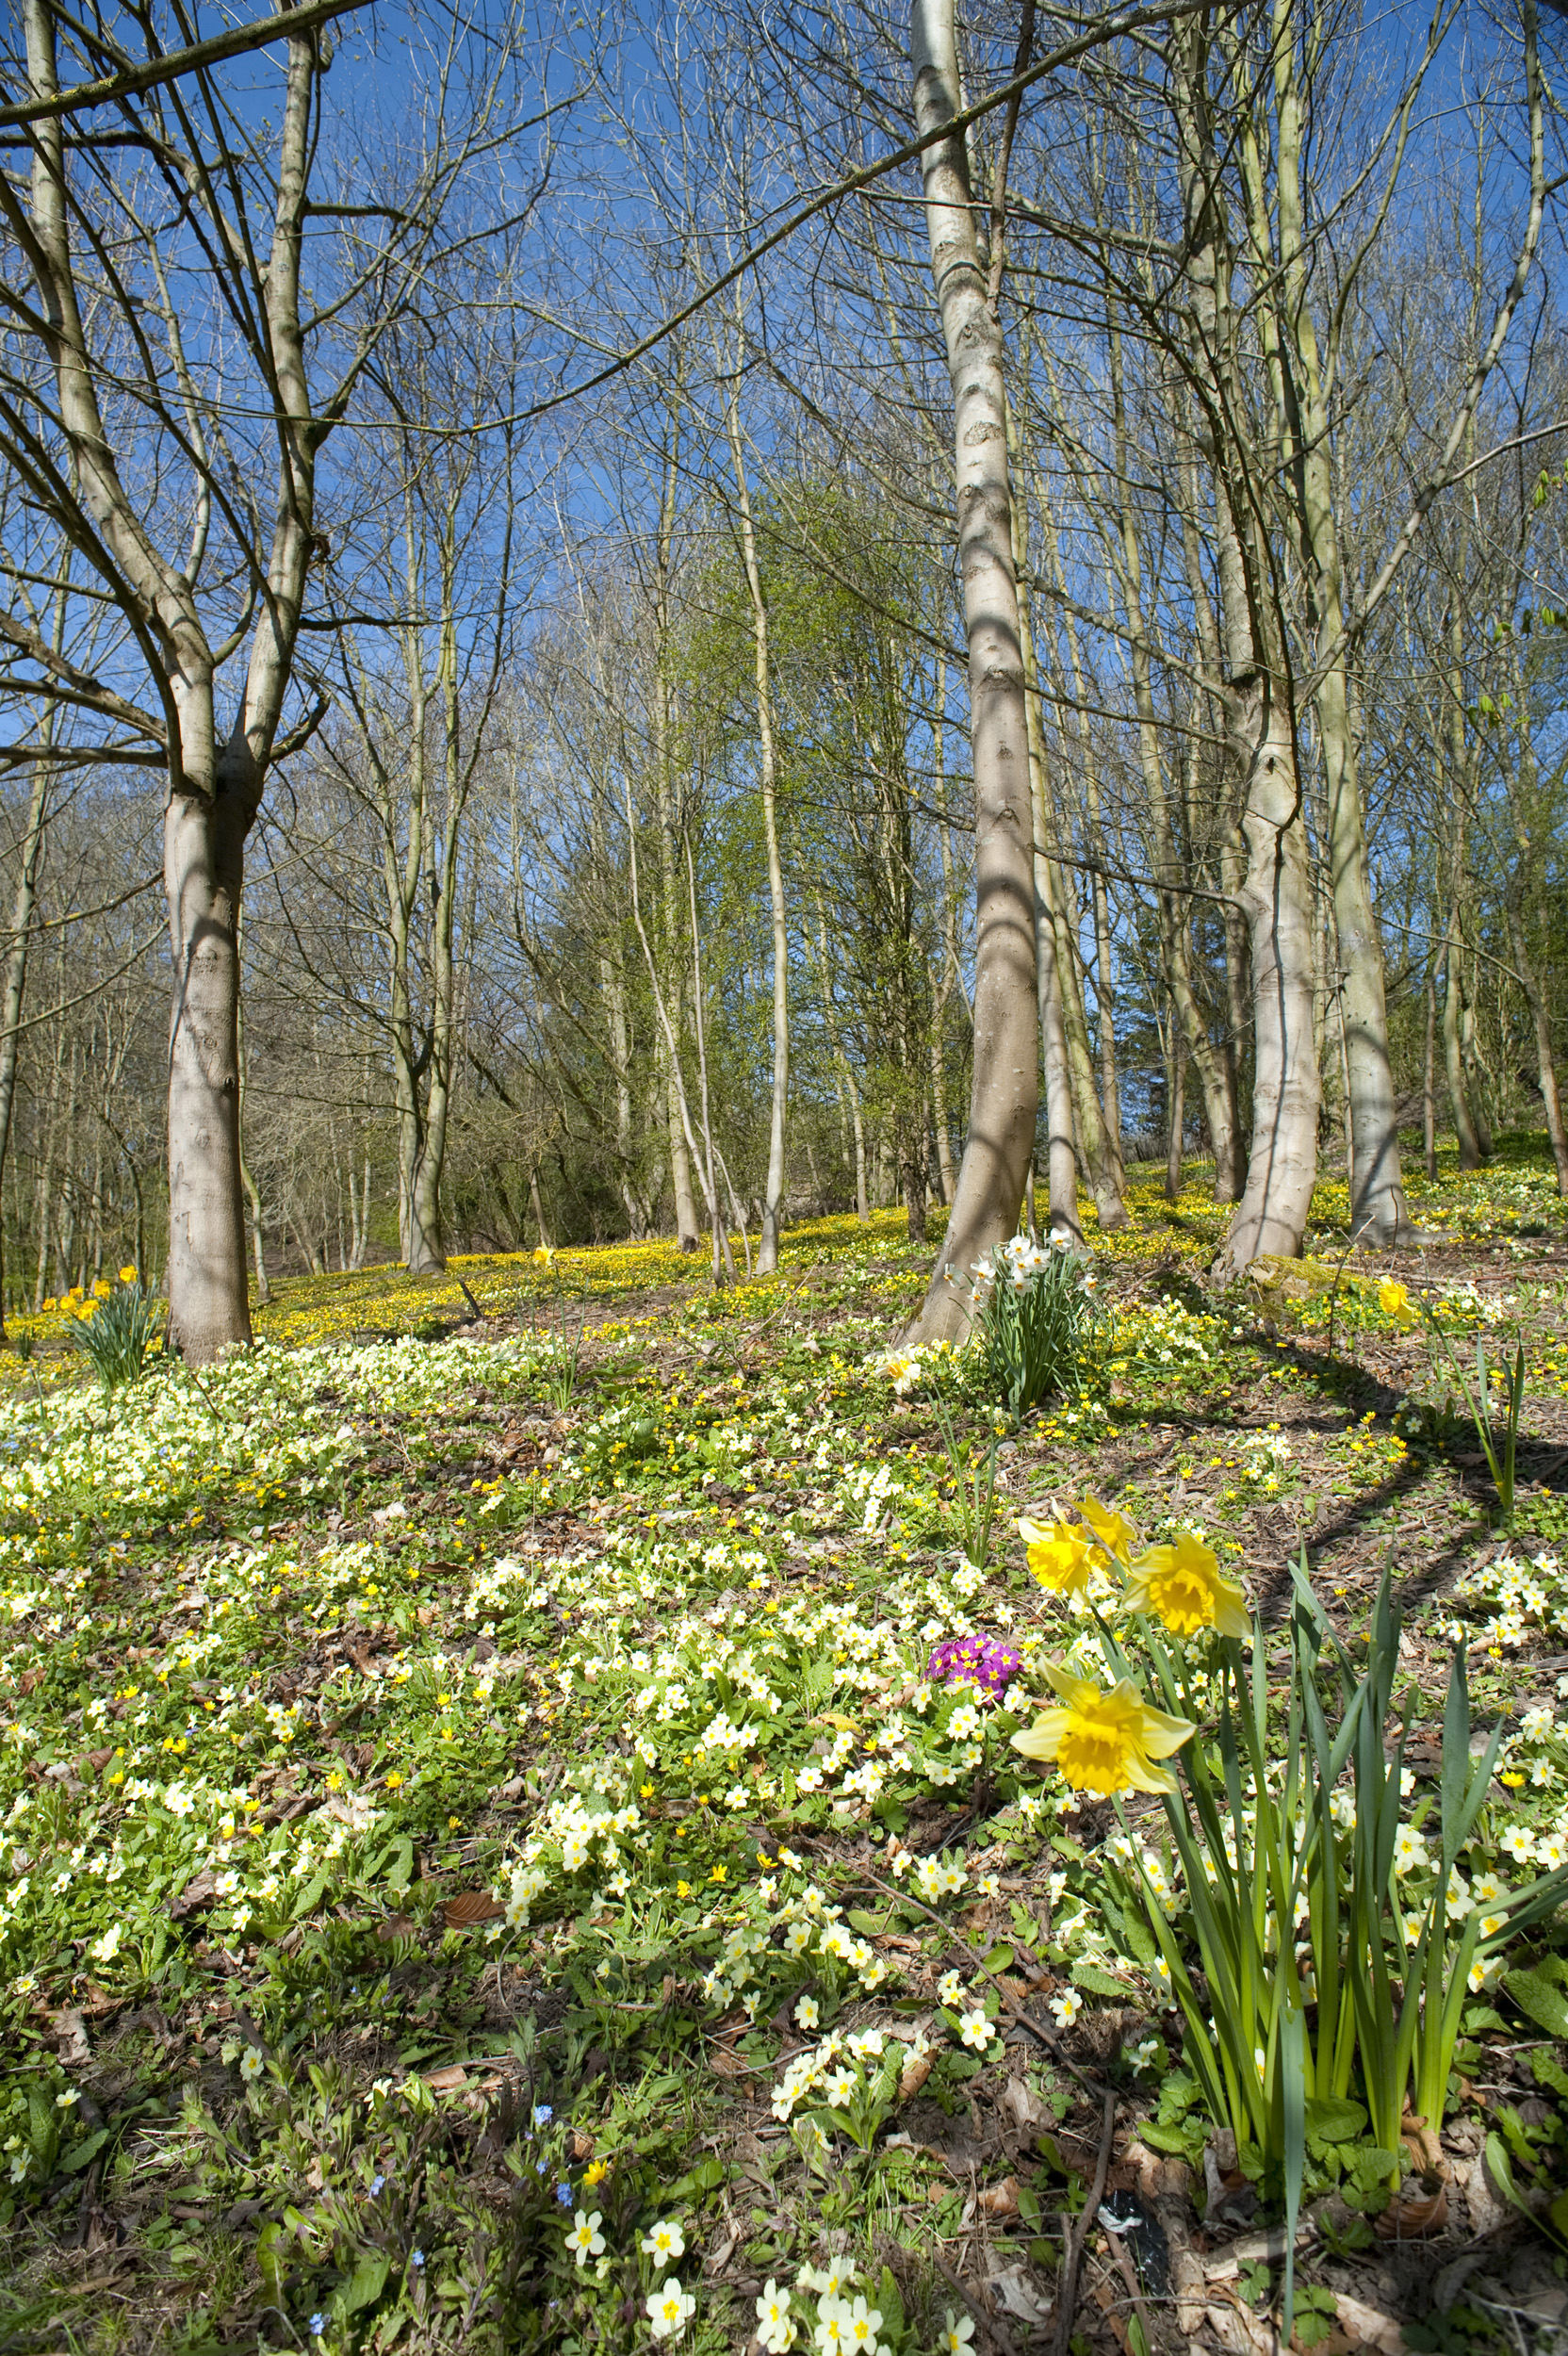 spring_woodland.jpg - Woodland in spring with a carpet of flowering primrose and daffodils under a clear blue sky